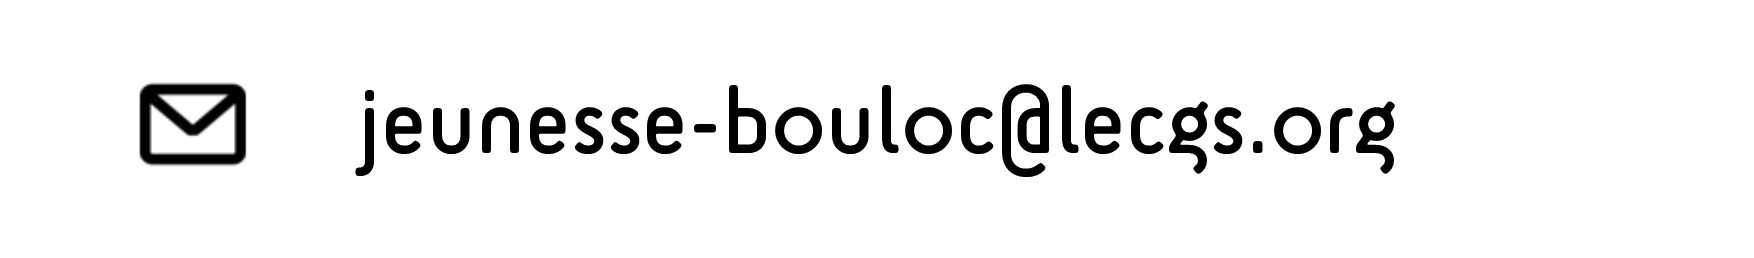 contact mail Bouloc